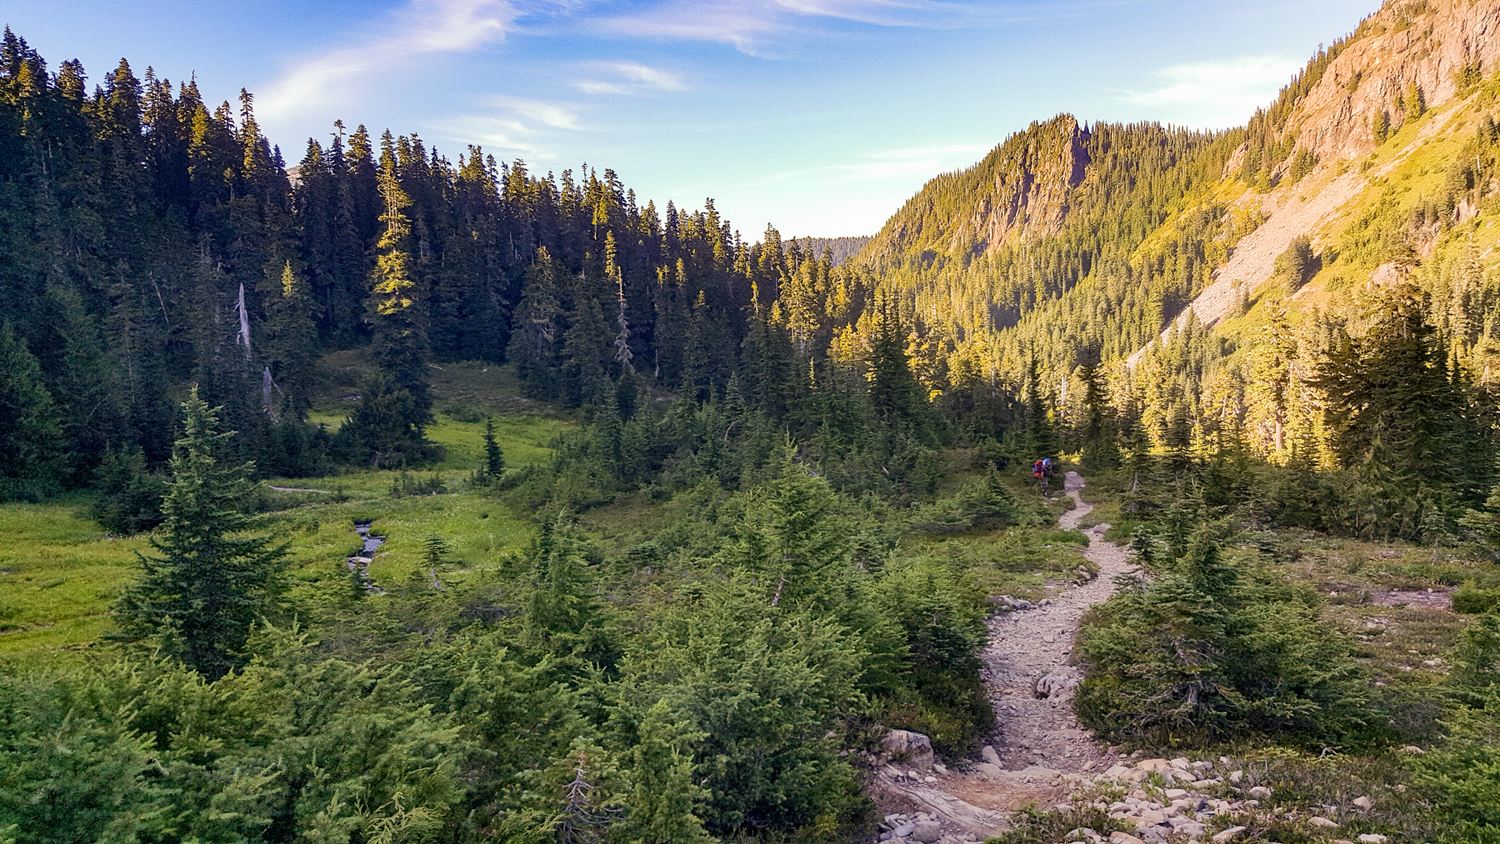 Wasim Muklashy Photography_Olympic National Park_High Divide Loop_115.jpg